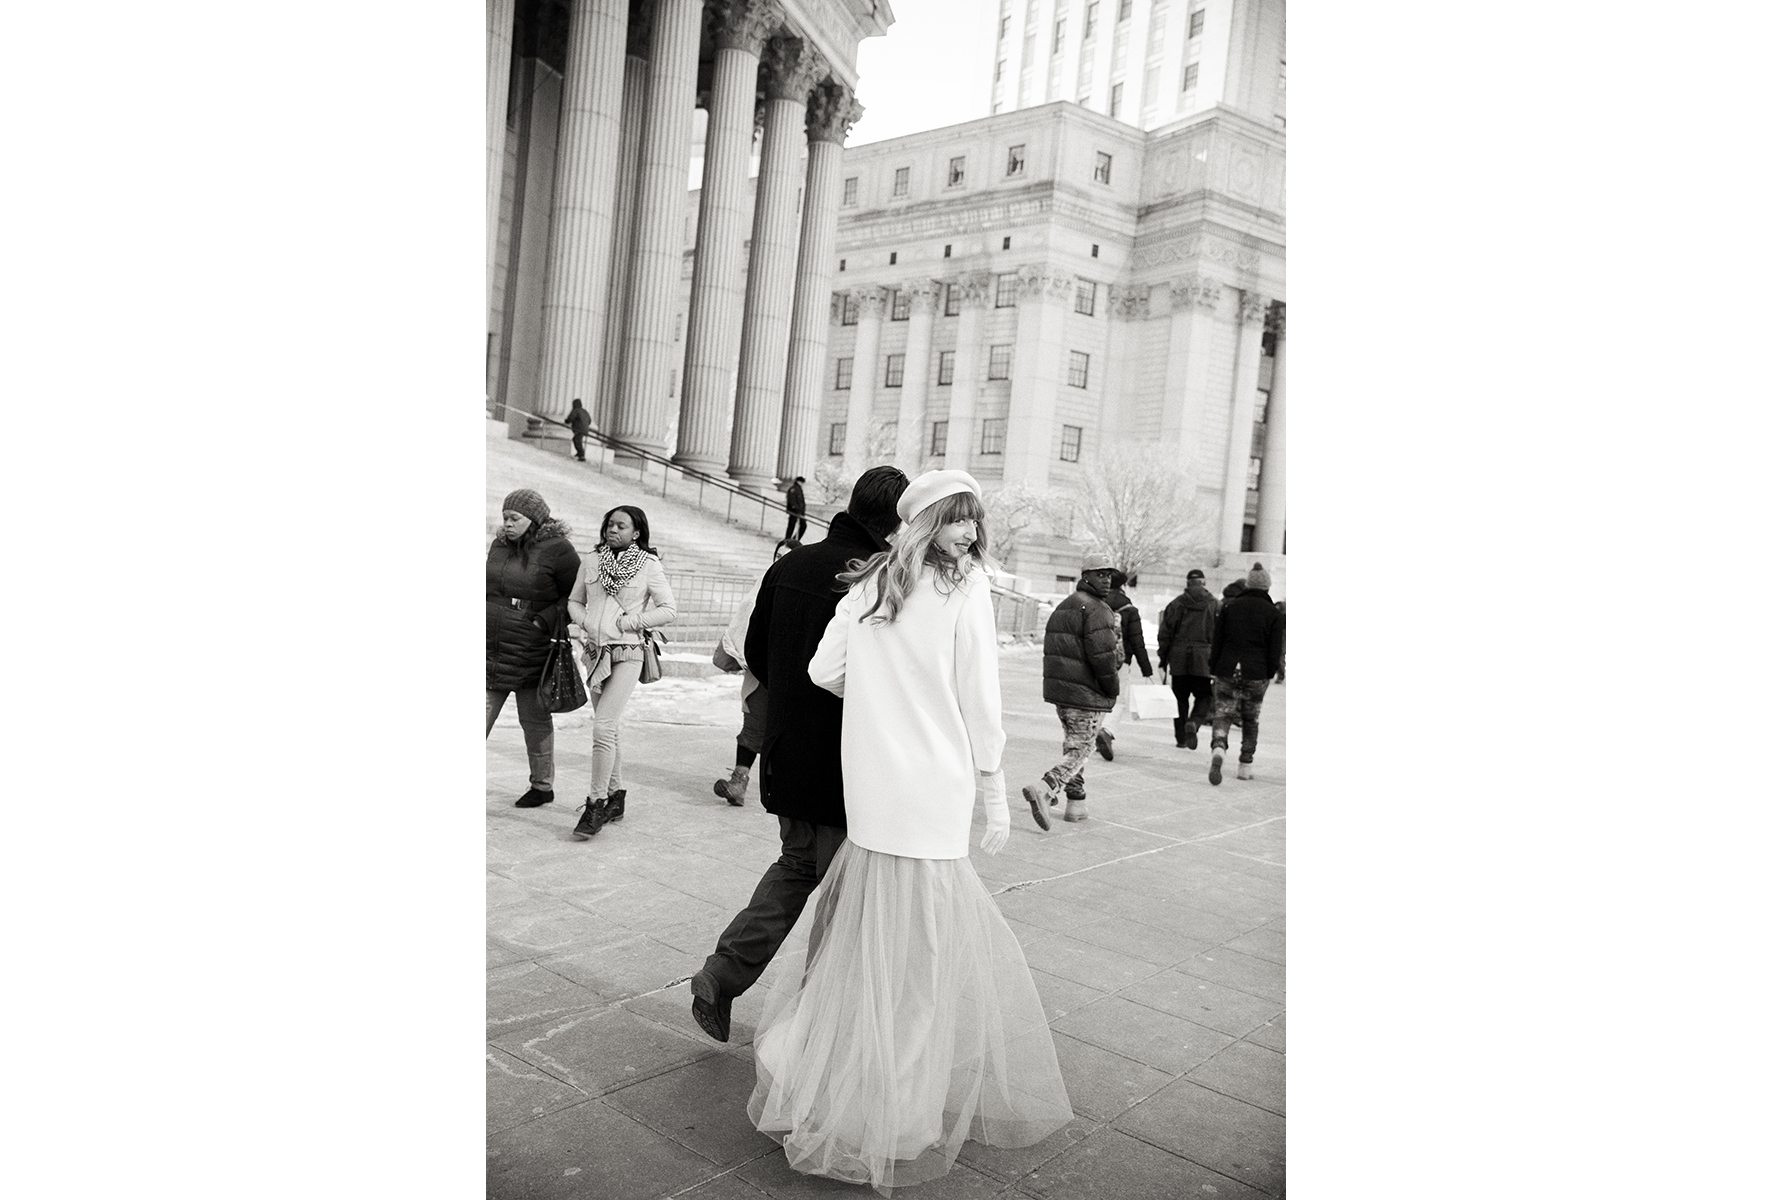 raquelreis_wedding_photography_engagements_008.png